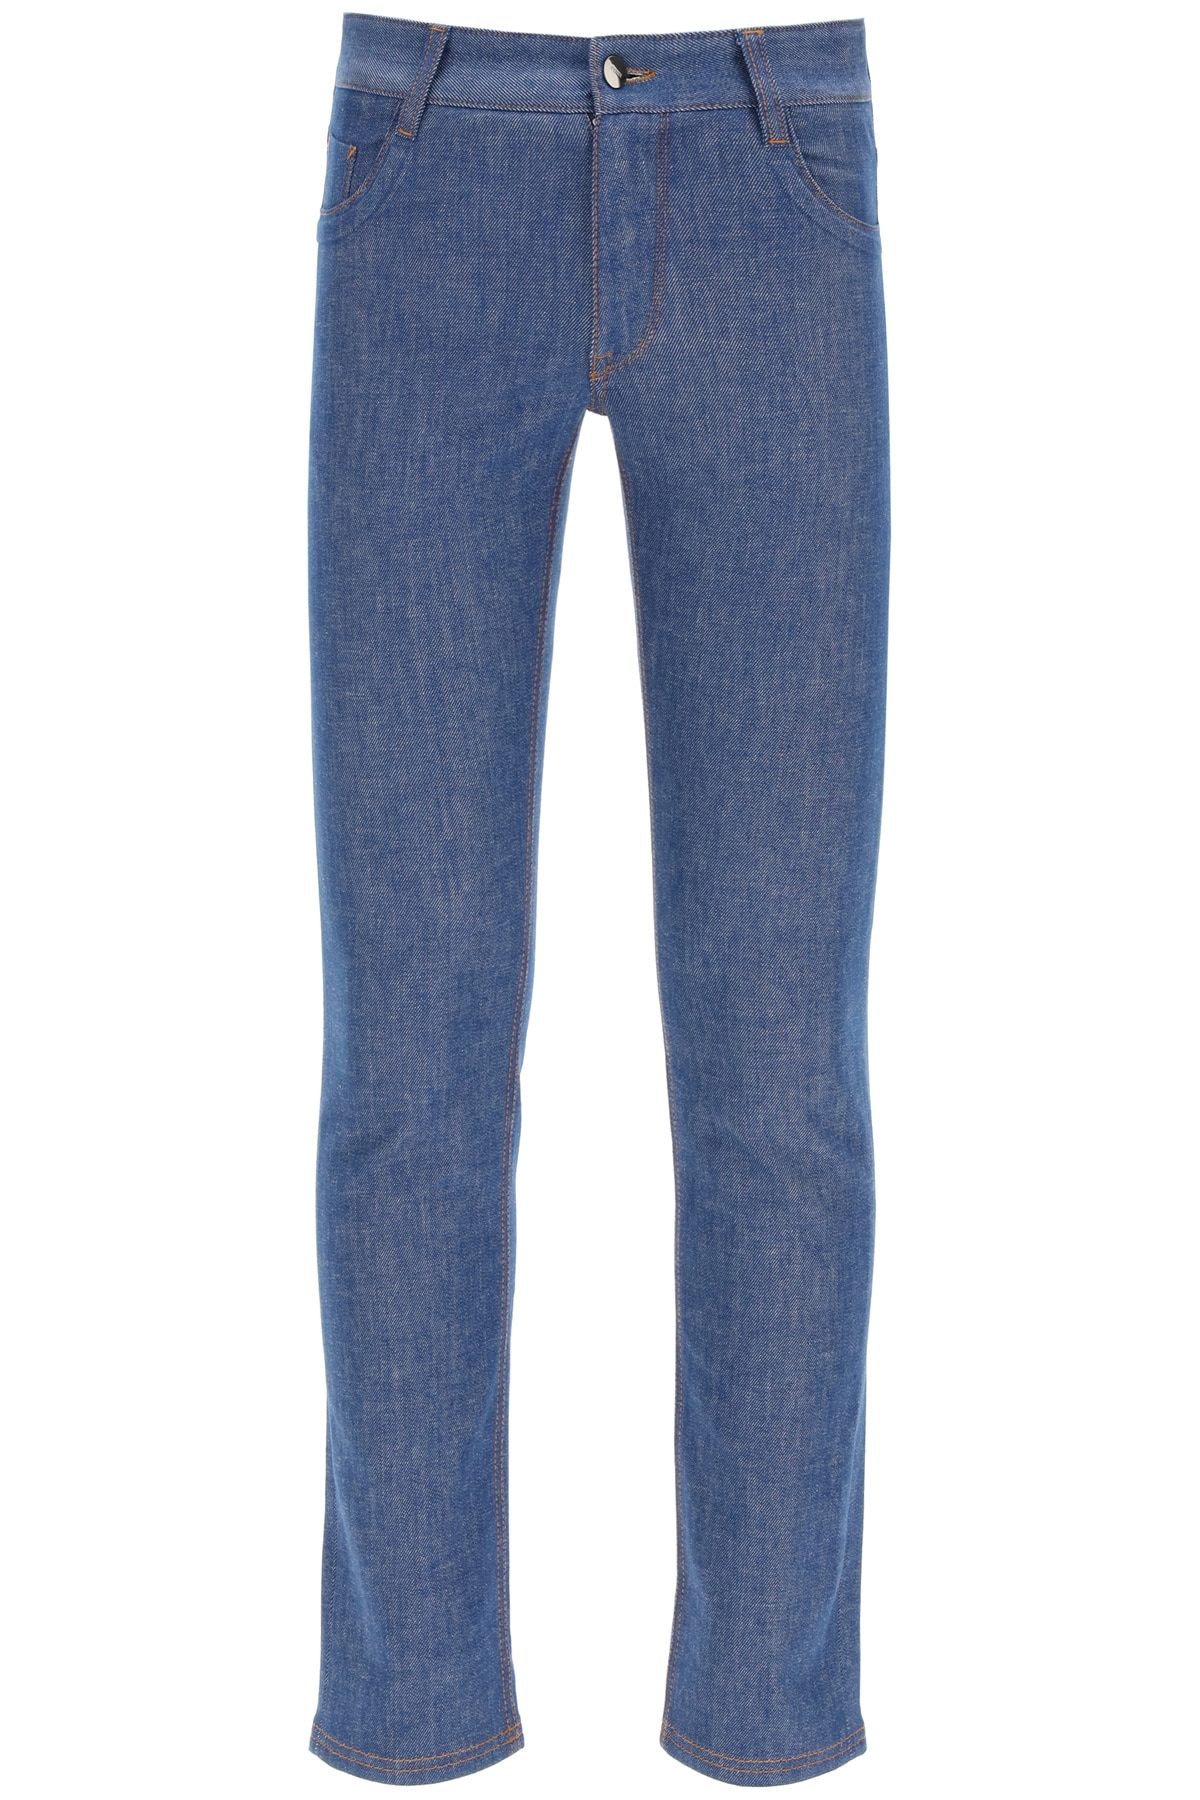 FENDI JEANS WITH EMBOSSED LOGO 32 Blue Cotton, Denim